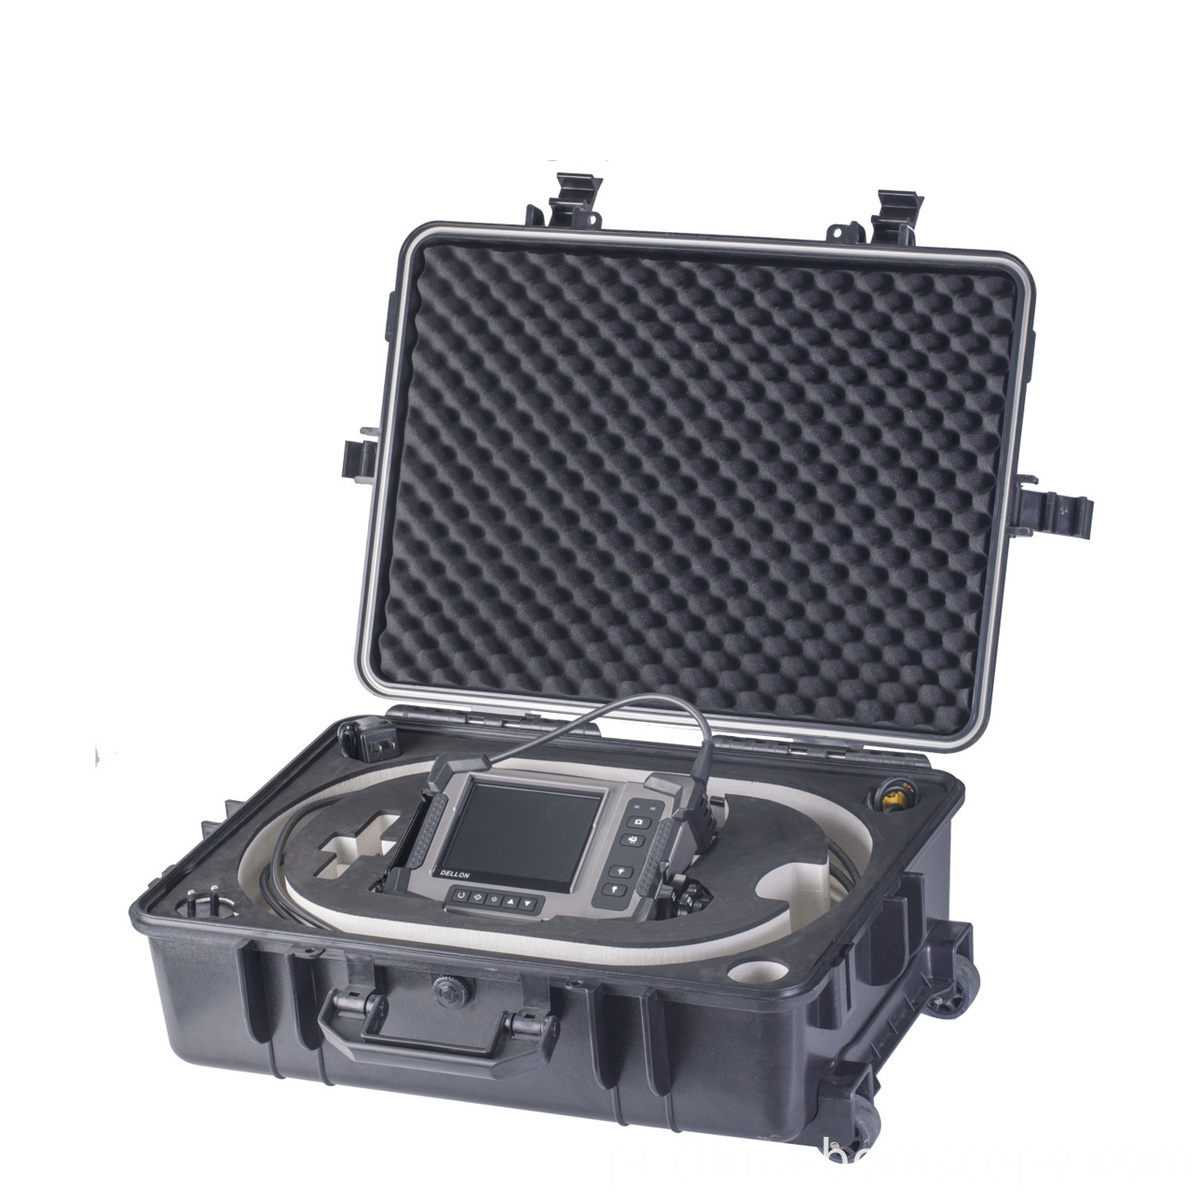 HD Industrial borescope